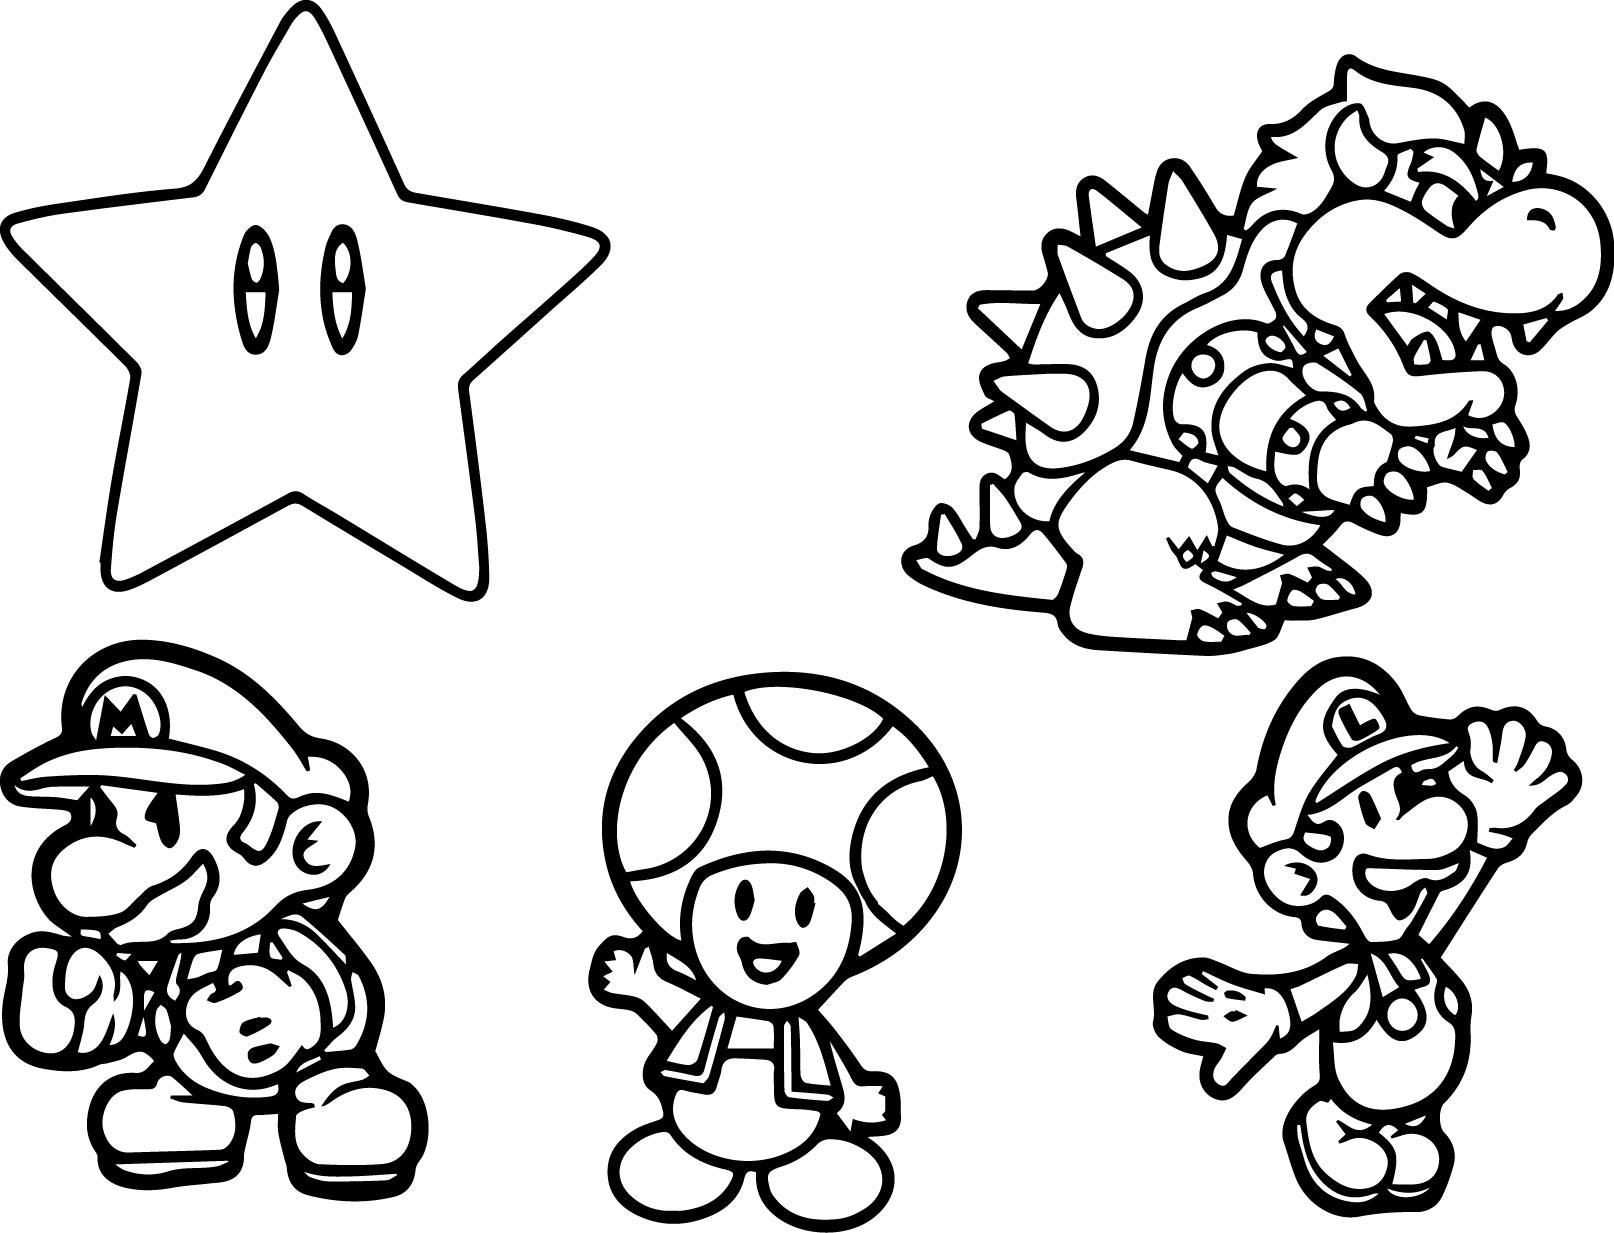 Mario Characters Drawing at GetDrawings.com | Free for personal use ...